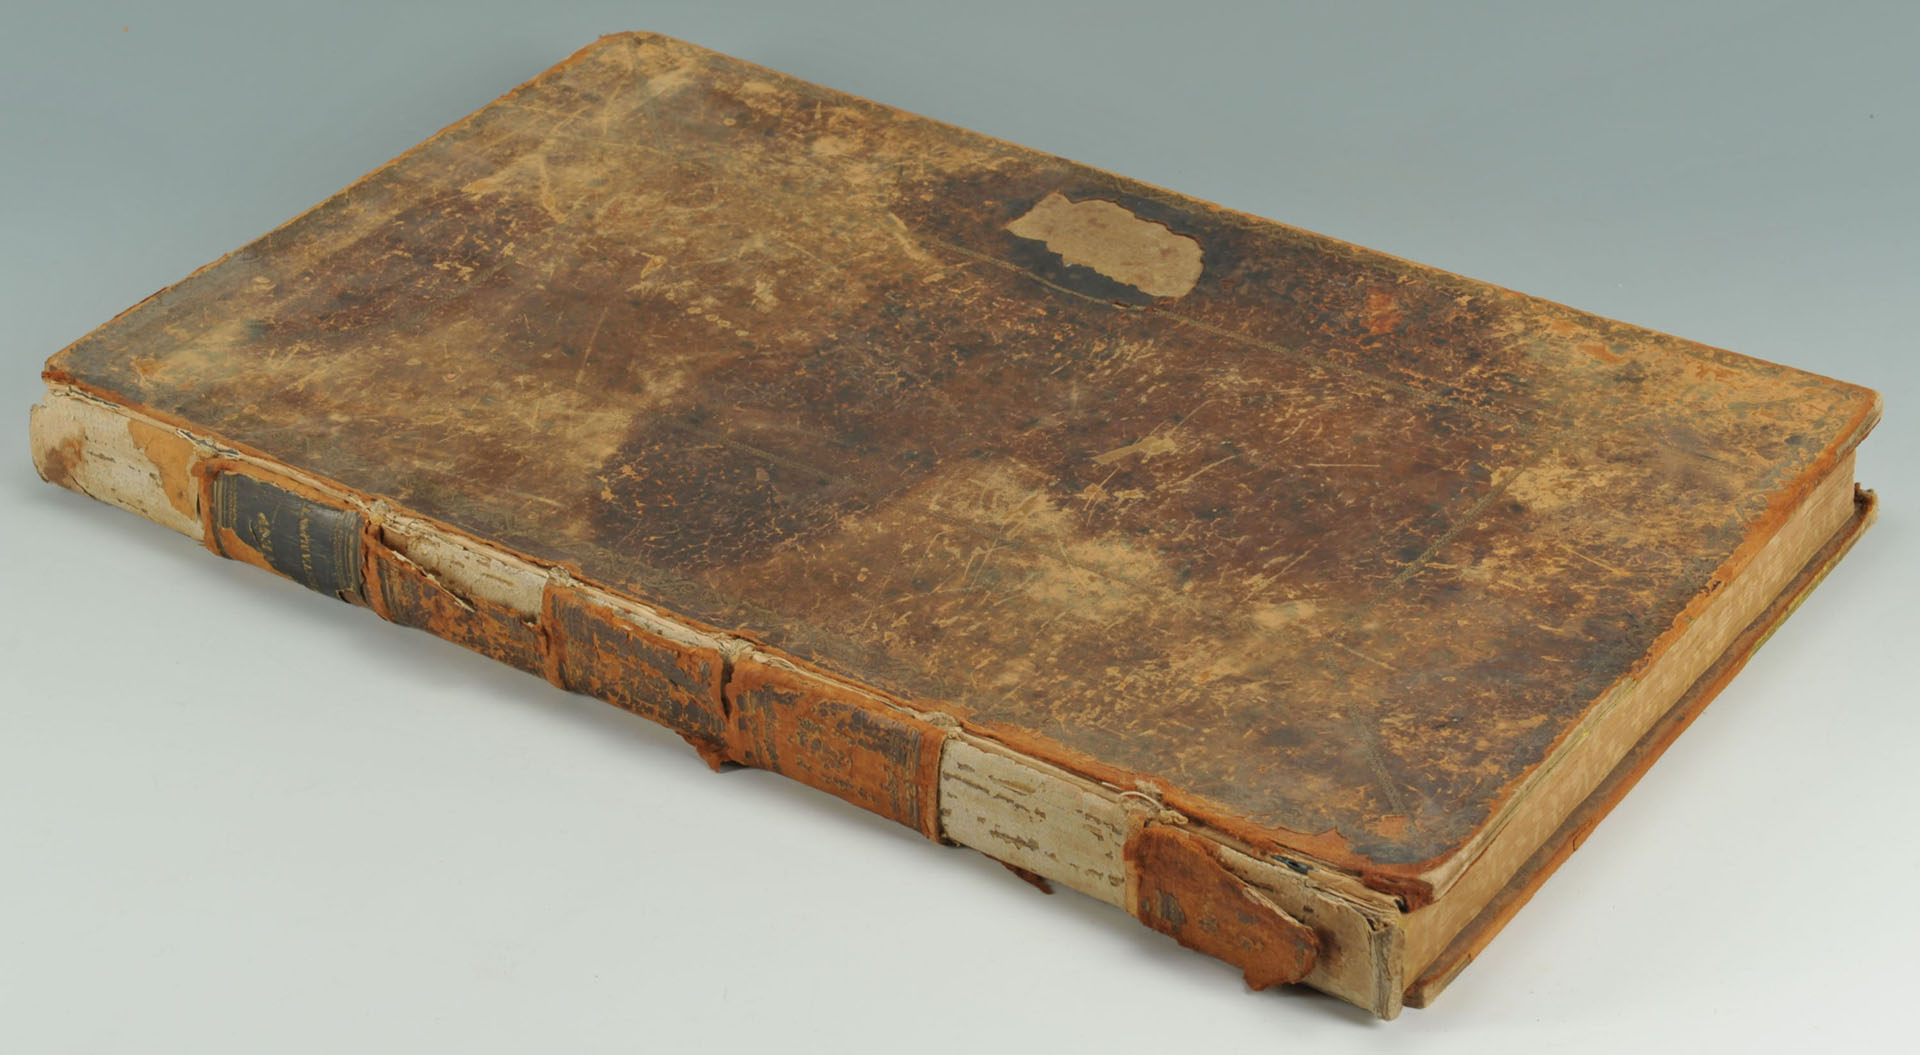 Lot 692: 1822 Columbian Family and Pulpit Bible